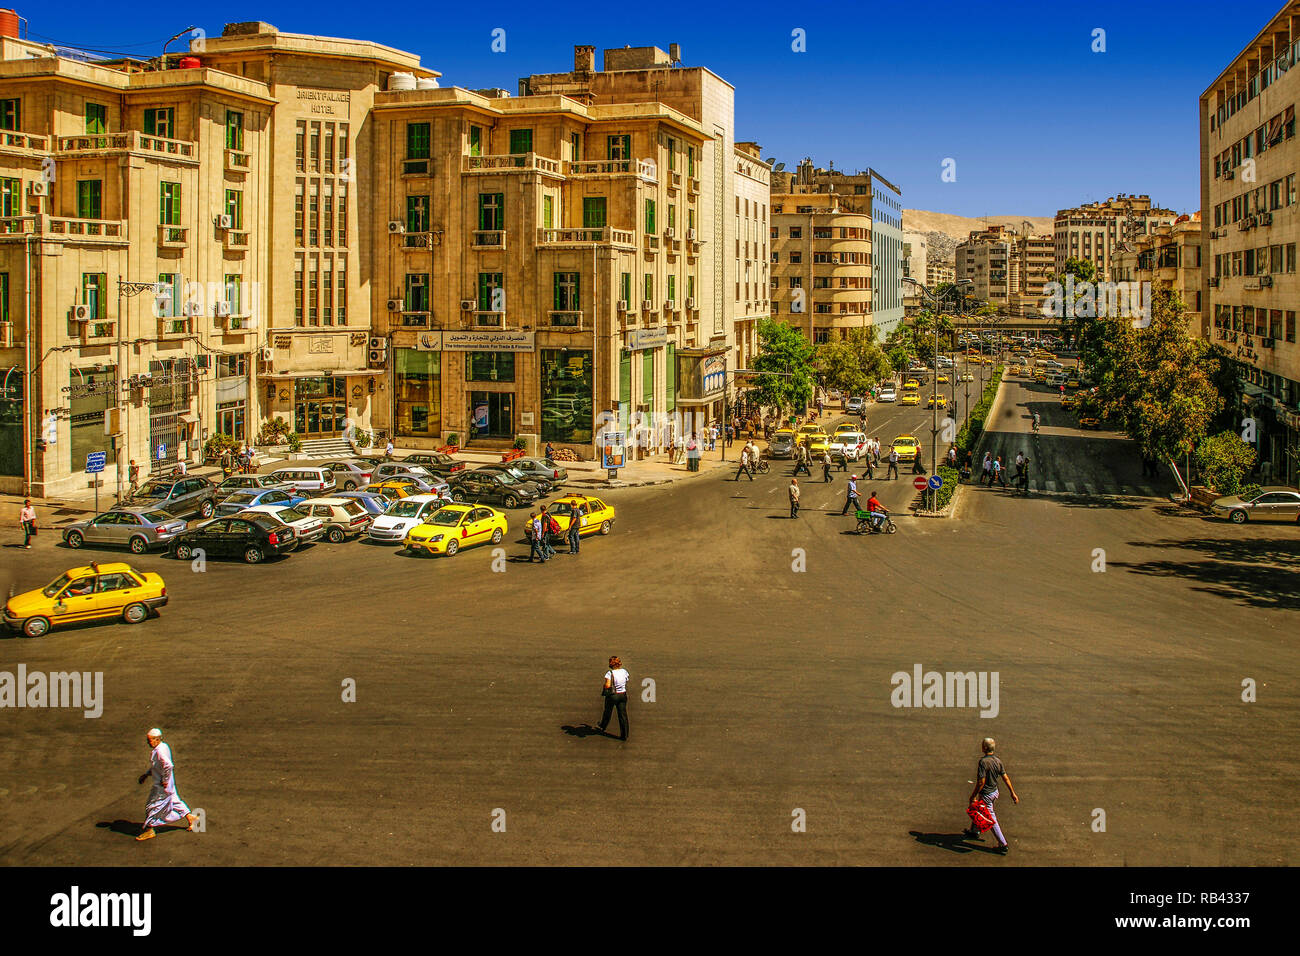 Modern city by the Hedjaz railway station, and the famed Orient Palace Hotel. Damascus. Syria, Middle East - Stock Image